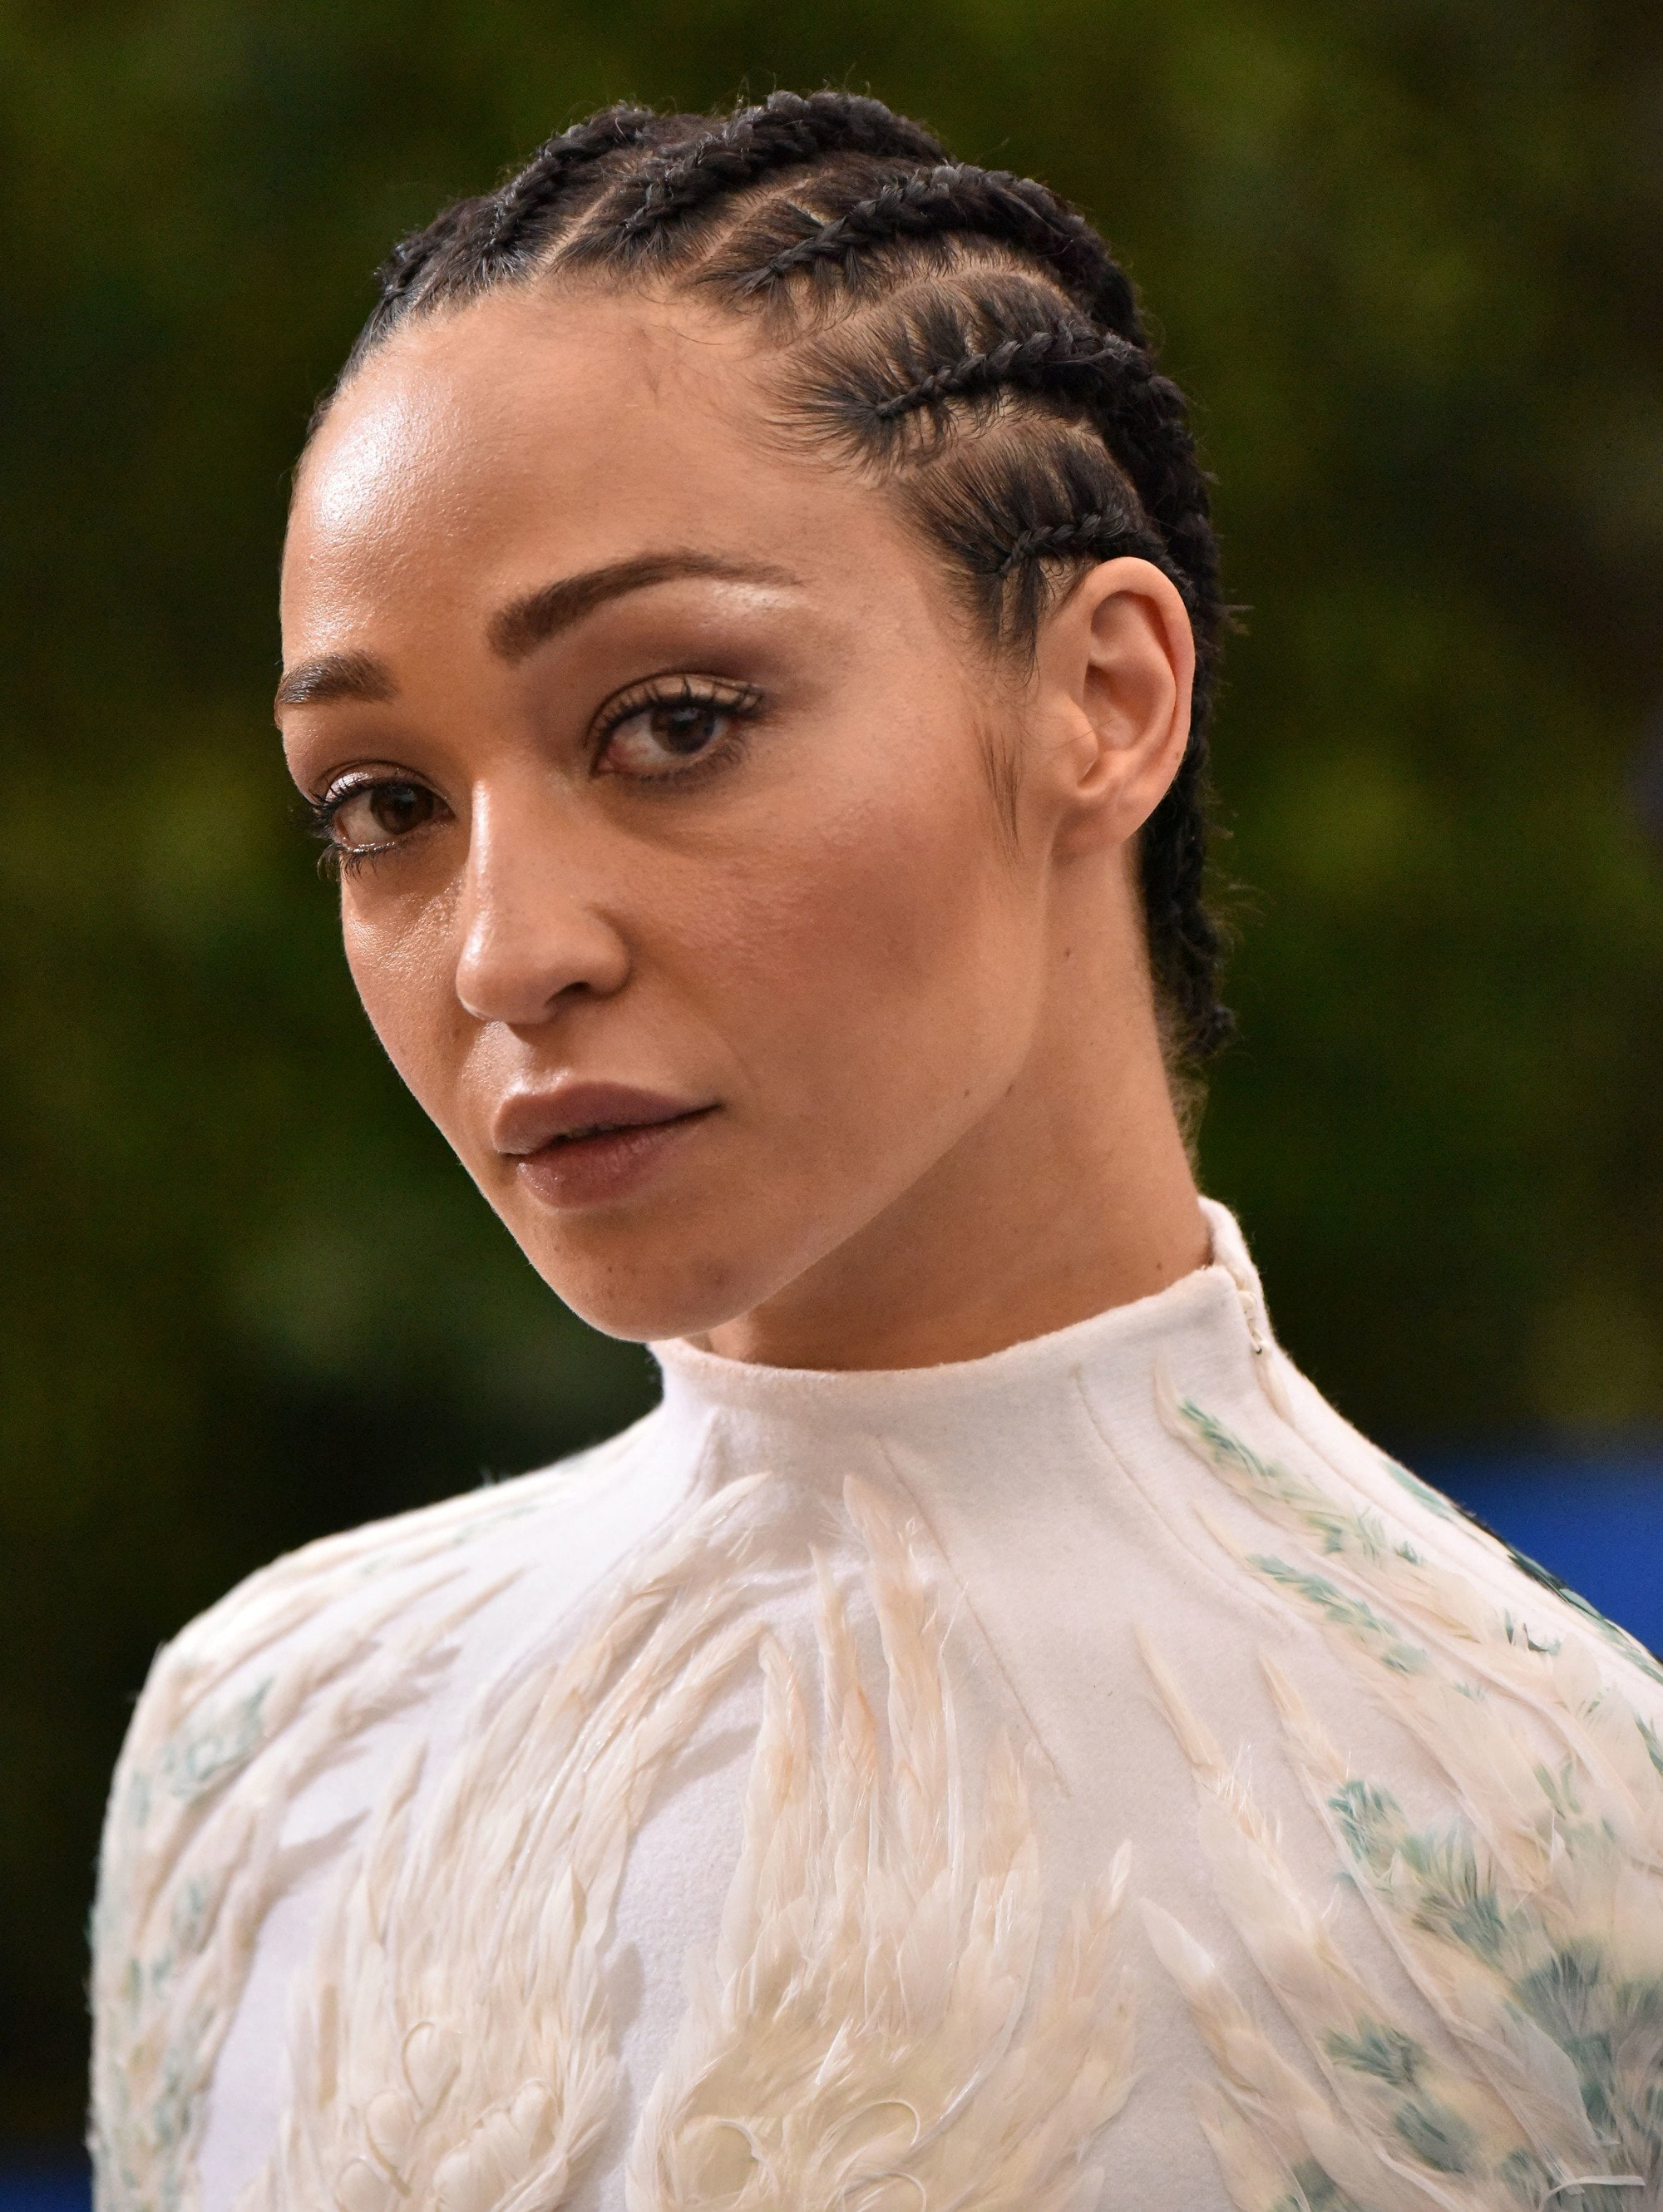 Ruth Negga with cornrows in an updo